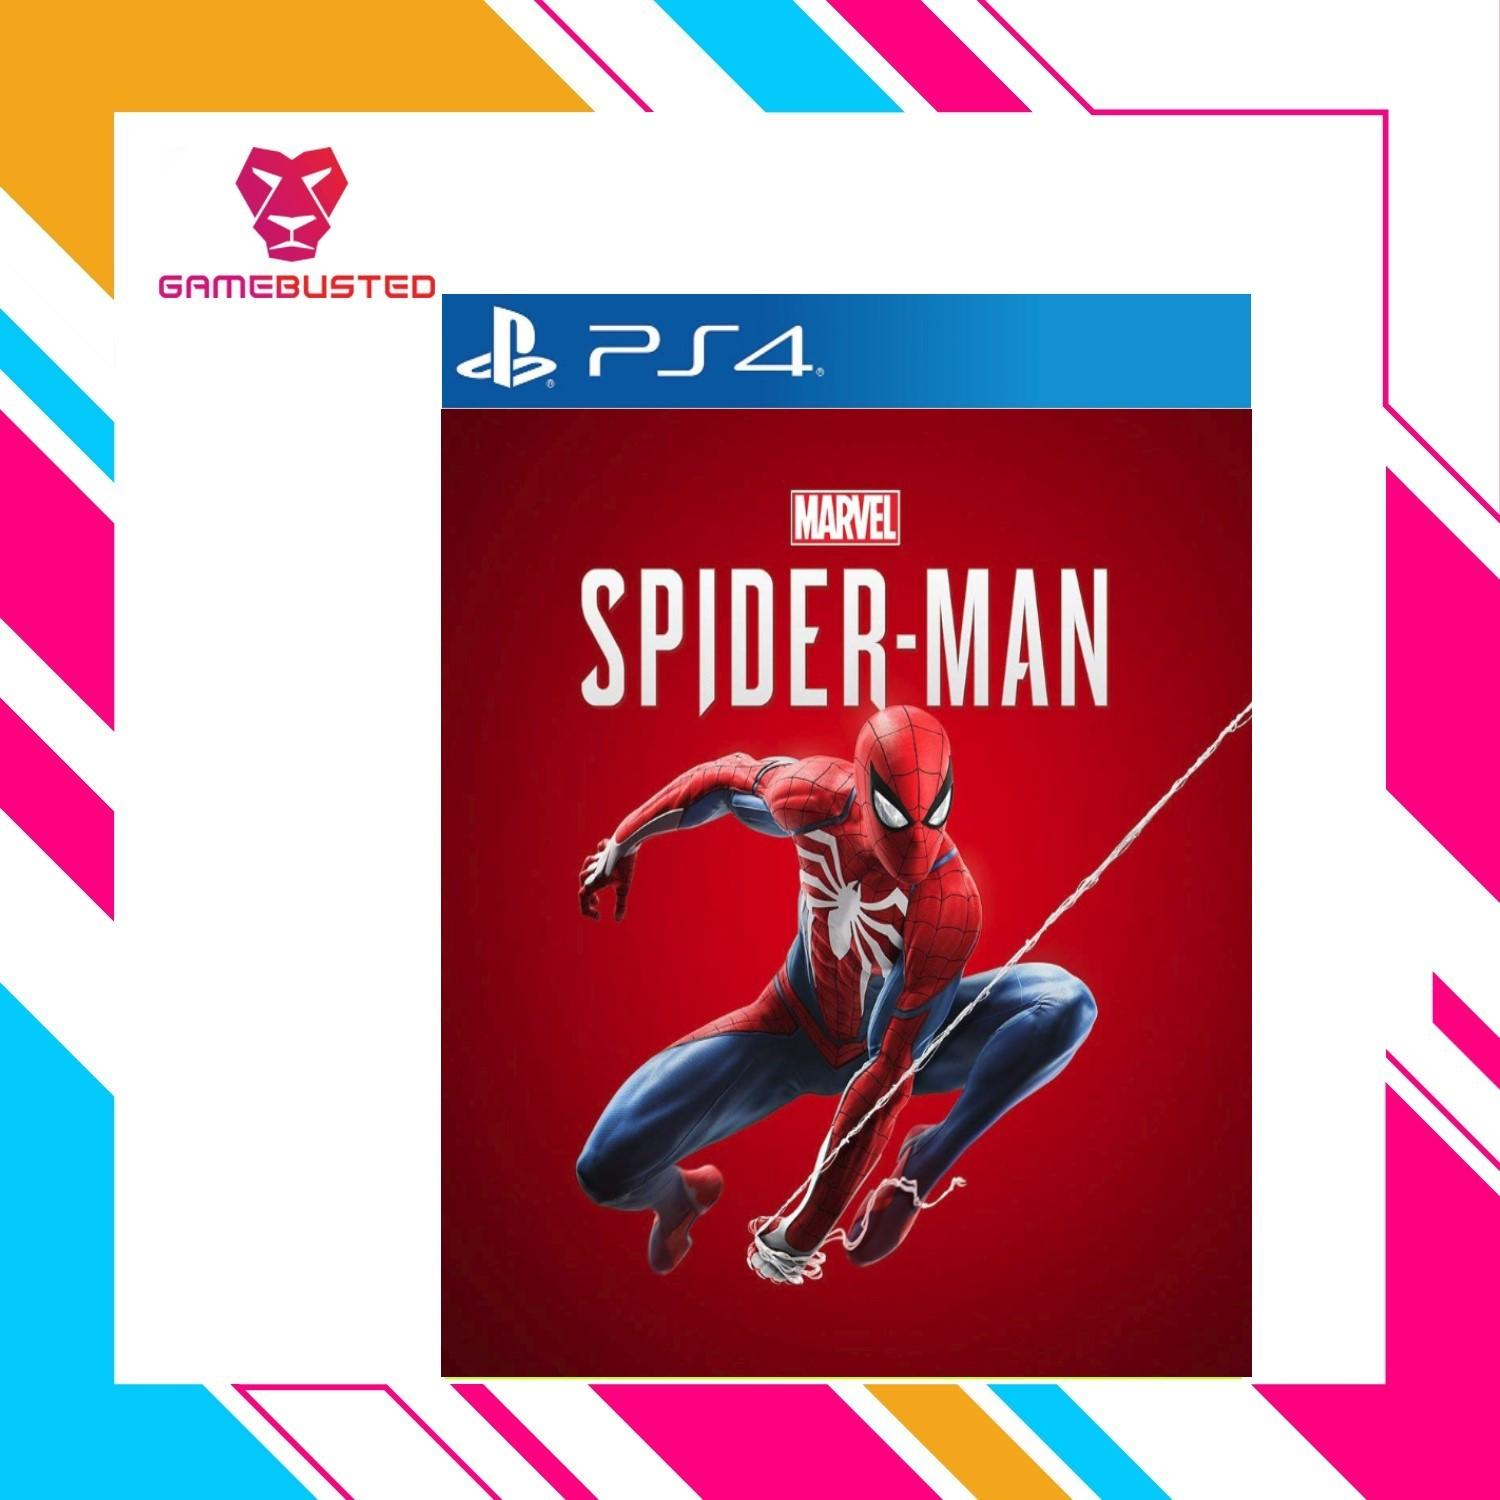 Buy Online Psp Games Best Sellers Lazada Ps4overwatch Reg 2 Ps4 Marvels Spiderman R1 All